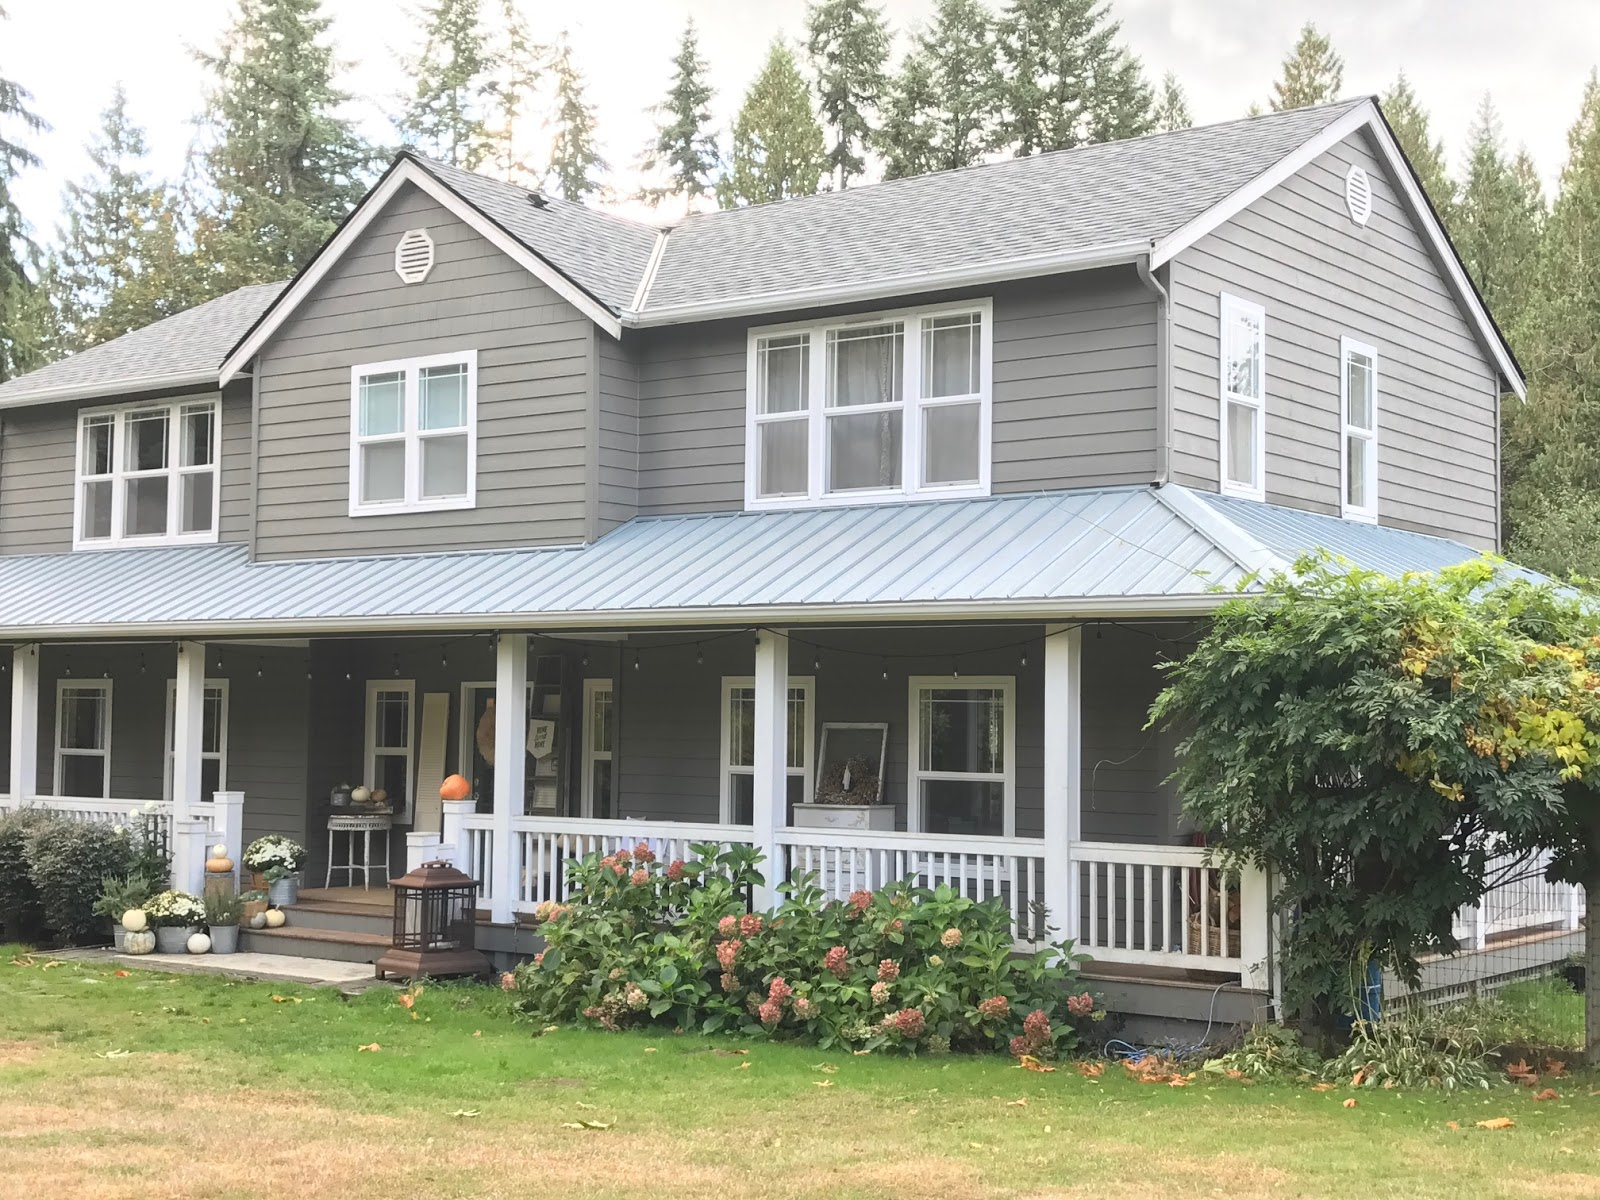 We Chose A Light Grey Standing Seam Metal Roof For Our Wrap Around Porch The Rest Of House Used Complementary Shingle